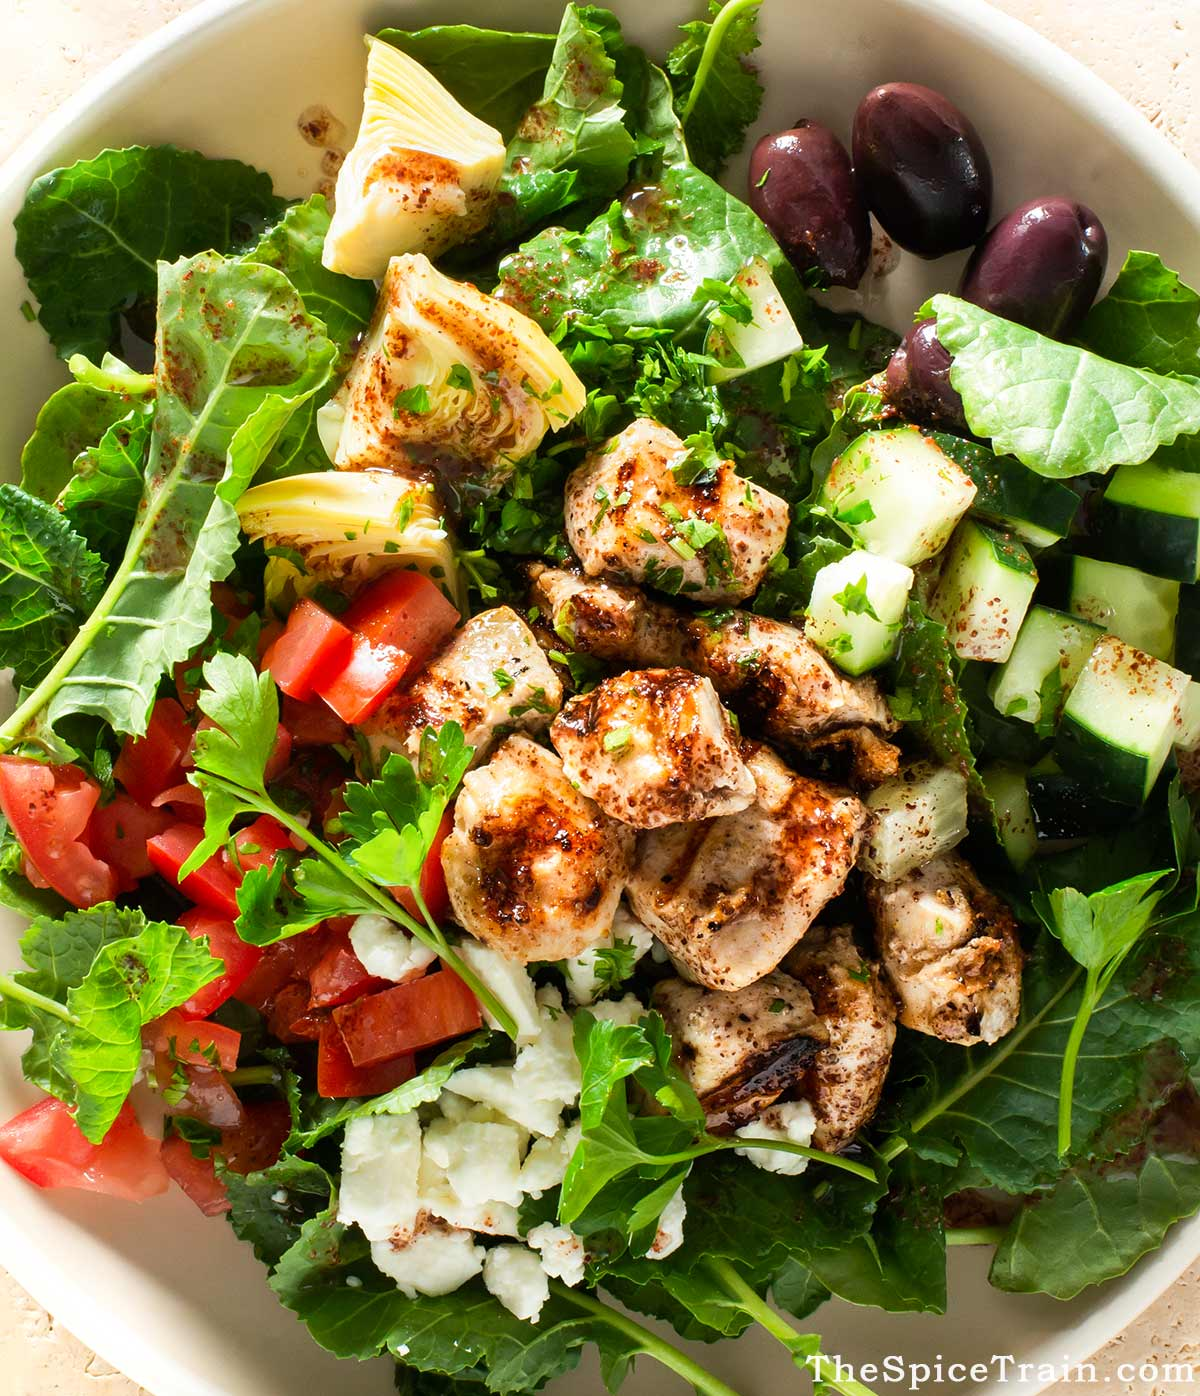 Closeup of a grilled chicken salad with sumac dressing.